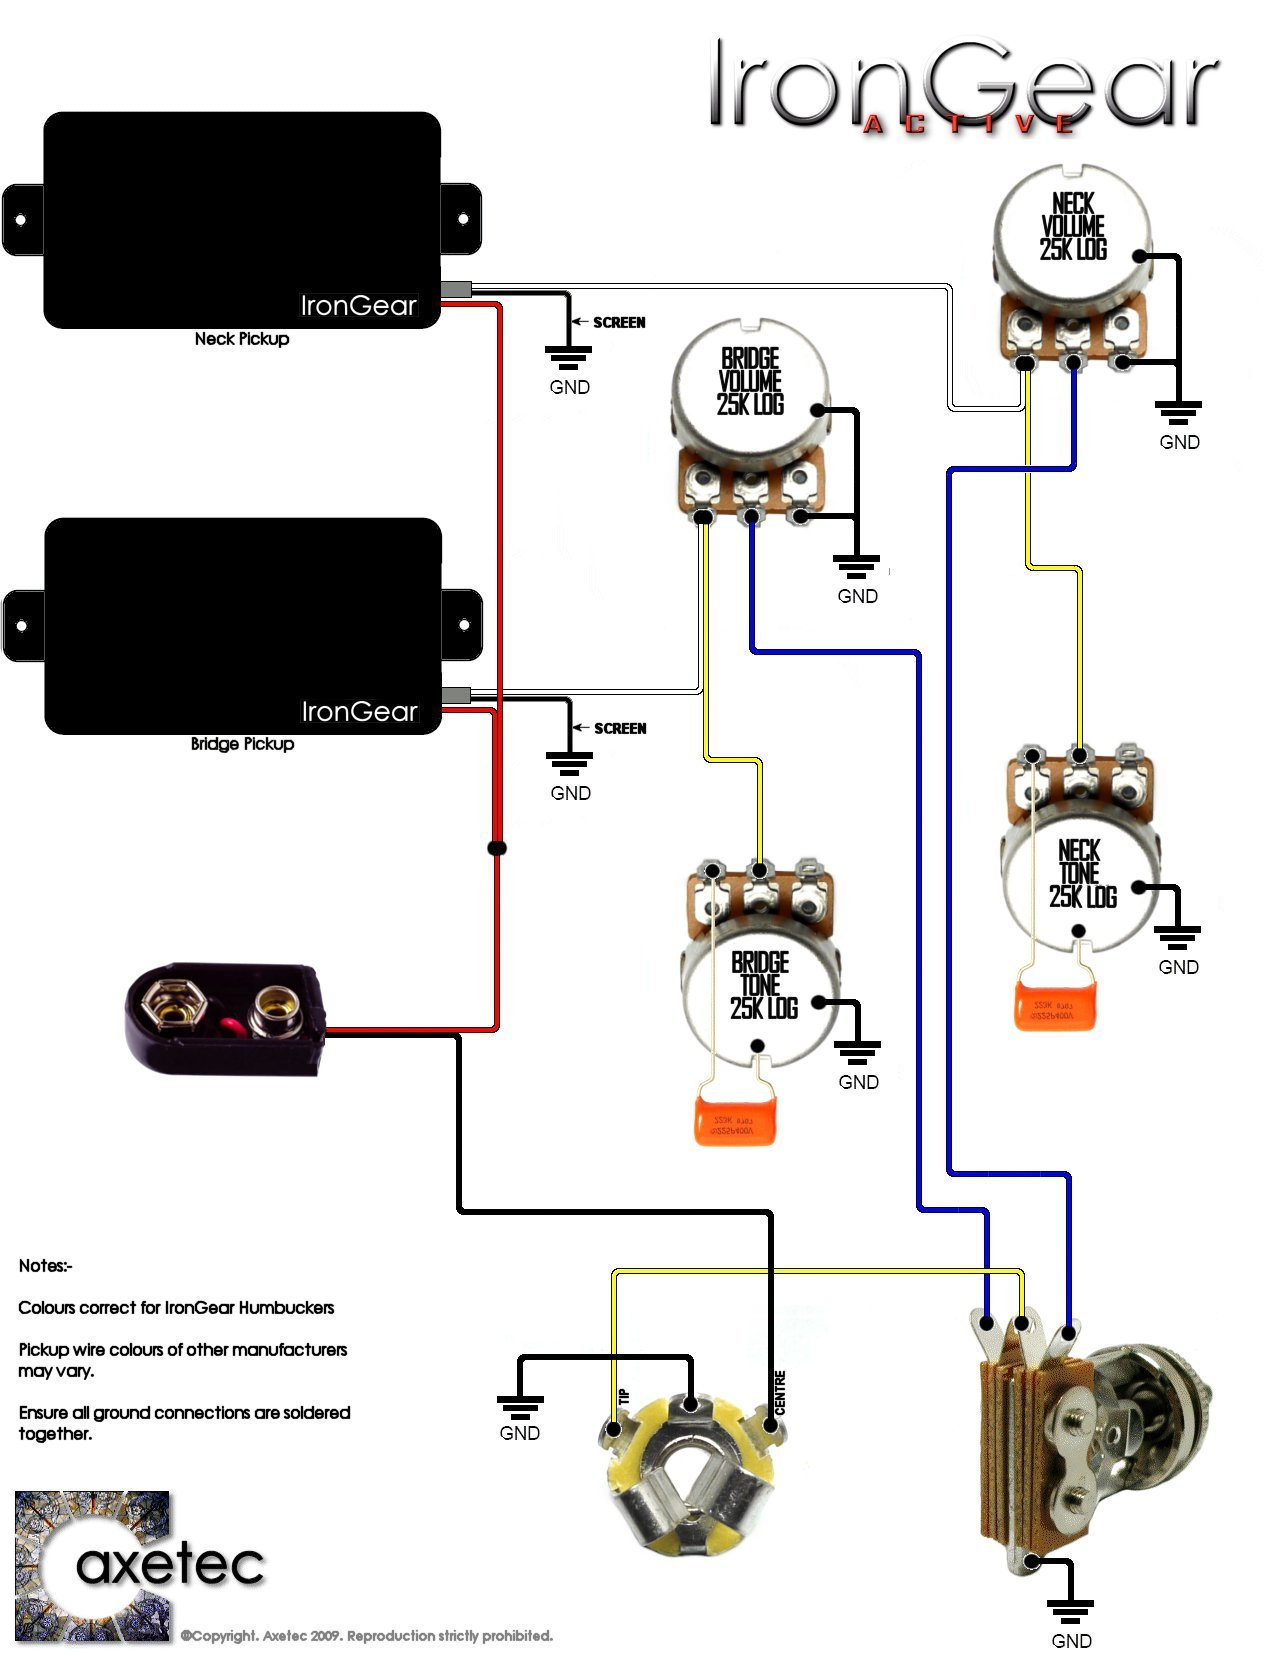 Les Paul Wiring Diagram 2009 Reinvent Your Guitar Diagrams Irongear Pickups Rh Co Uk Epiphone Special Switch